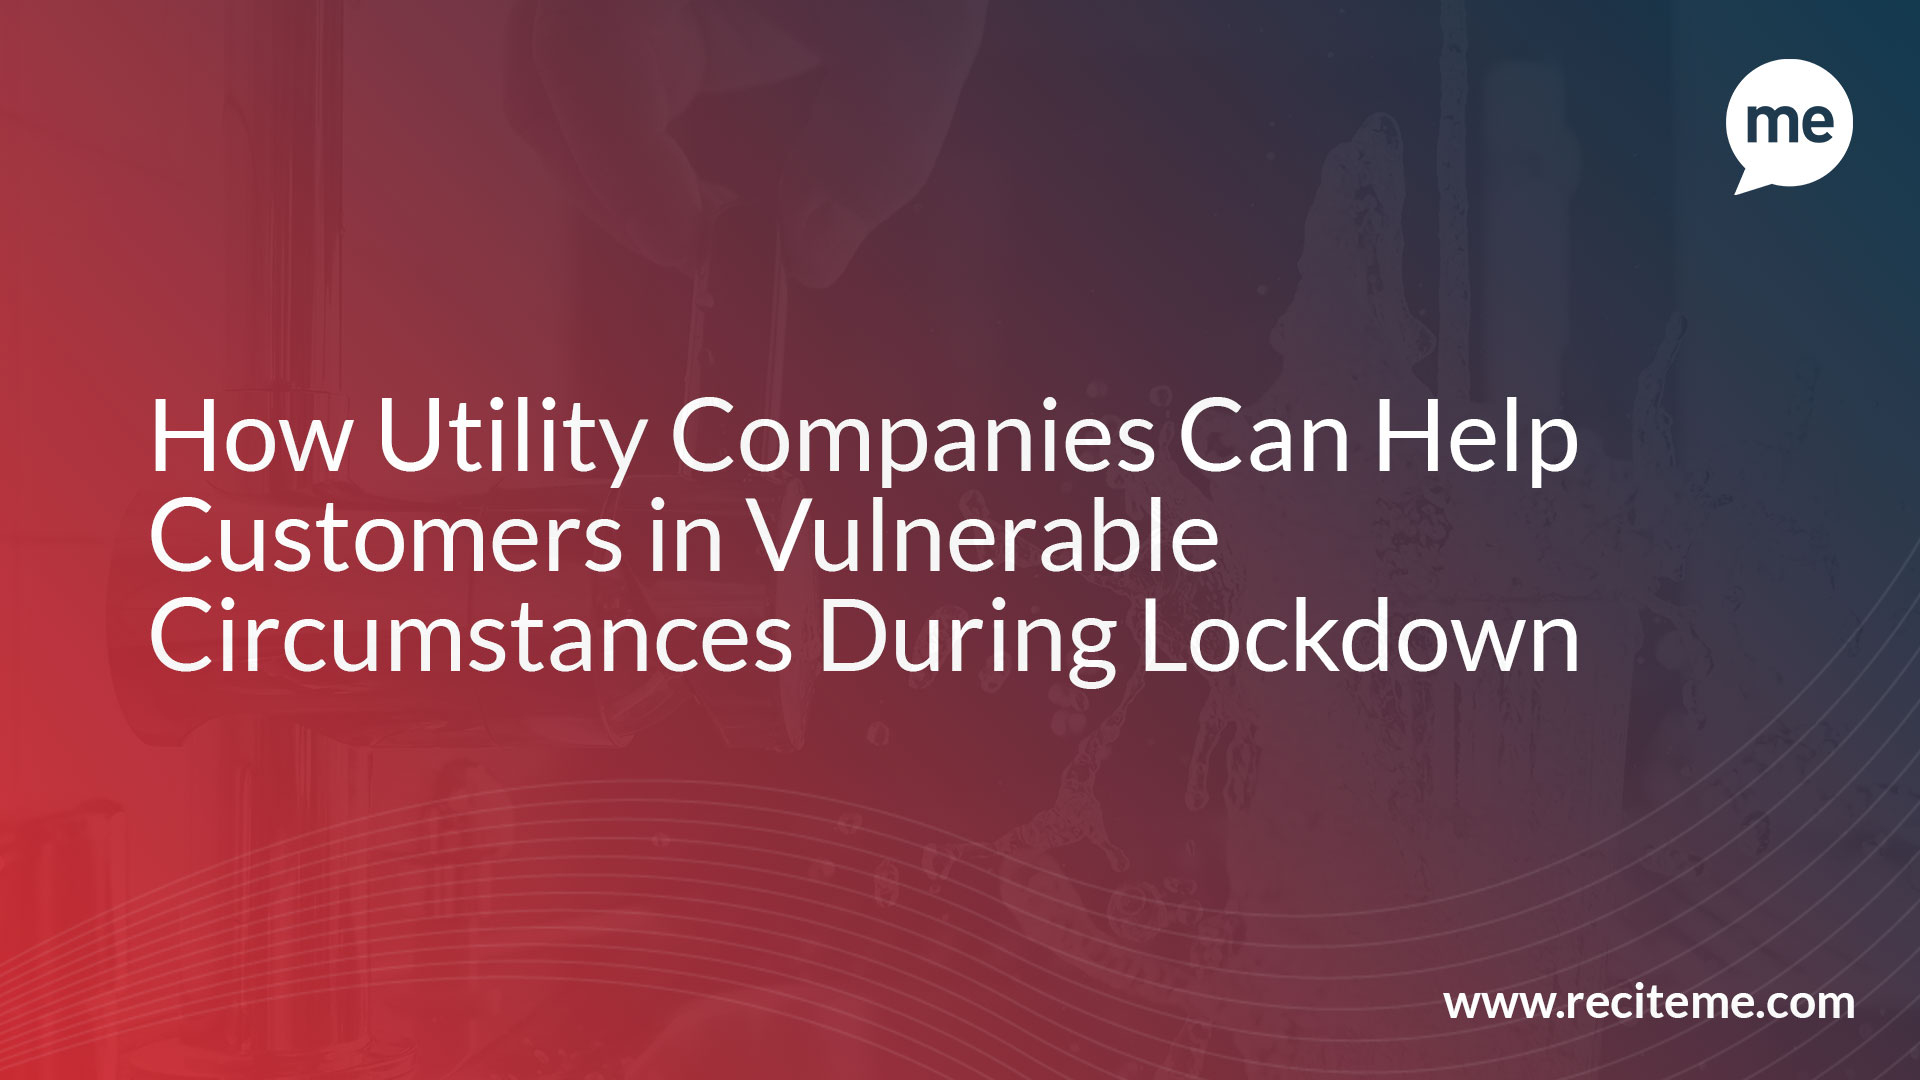 How Utility Companies Can Help Customers in Vulnerable Circumstances During Lockdown